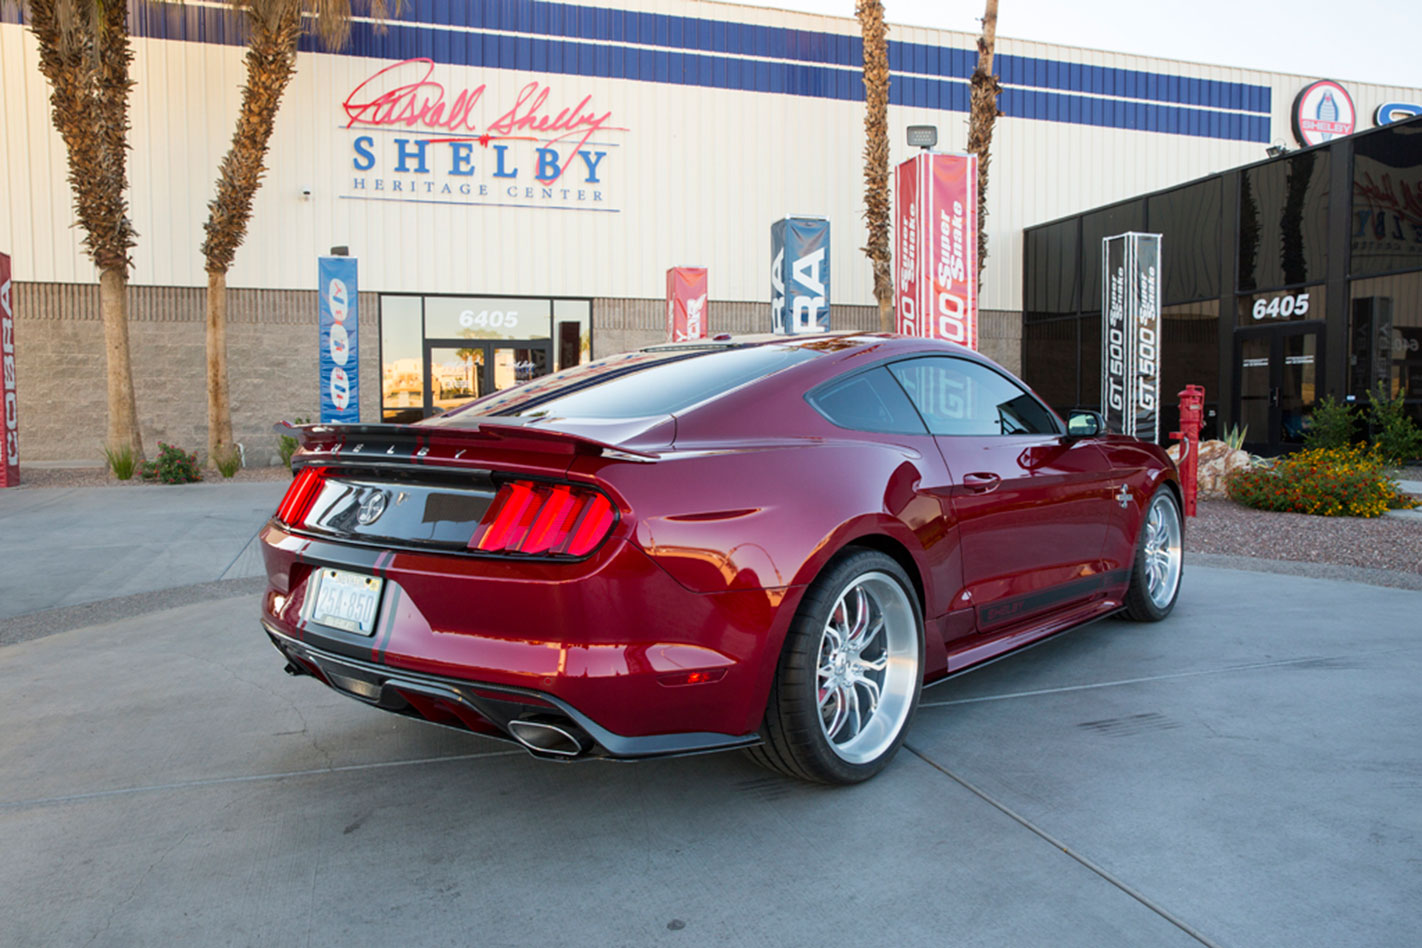 560kw Shelby Gt500 Coming To Australia Motor